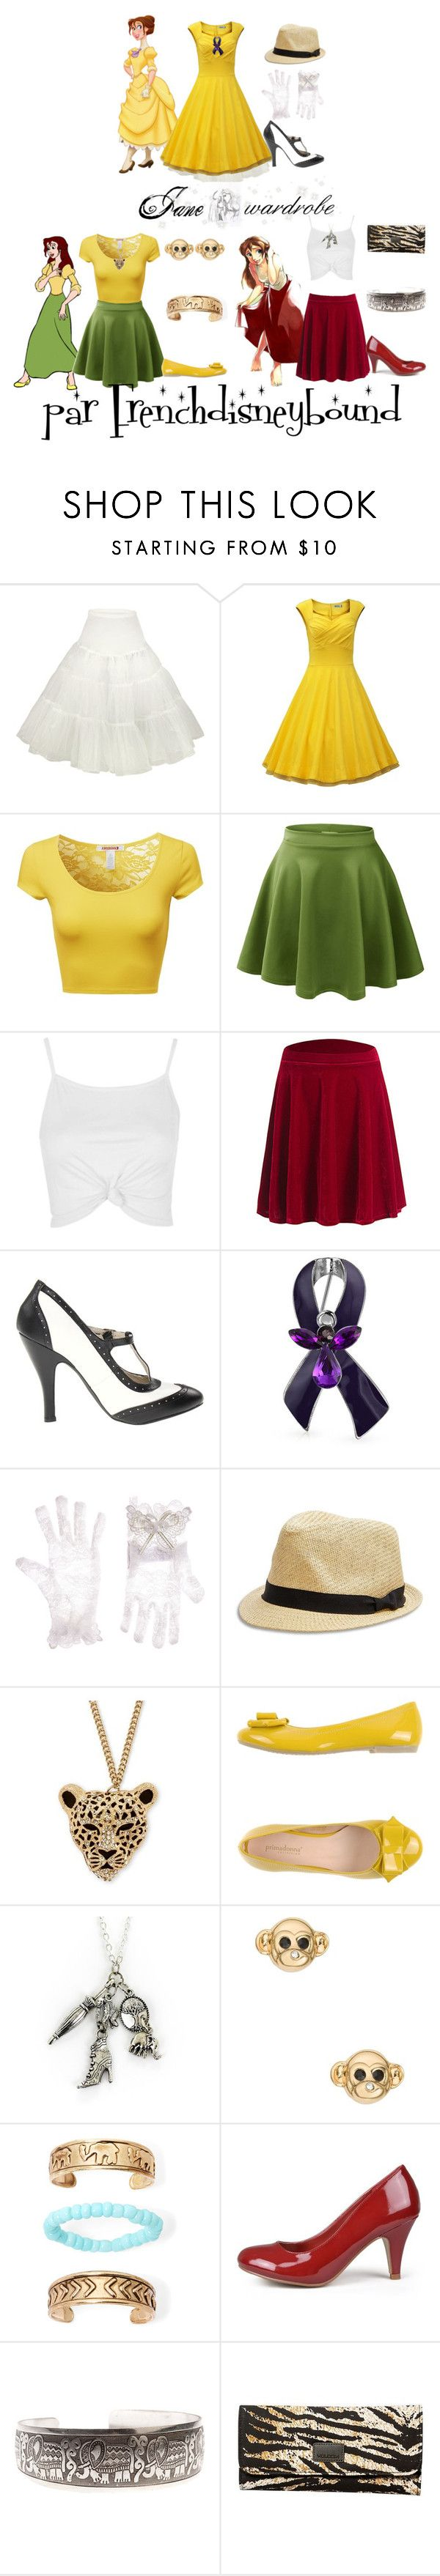 """Jane (Tarzan)"" by frenchdisneybound ❤ liked on Polyvore featuring Retrò, Disney, Topshop, Bling Jewelry, Monsoon, Lucky Brand, Palm Beach Jewelry, PrimaDonna, Kate Spade and Arizona"